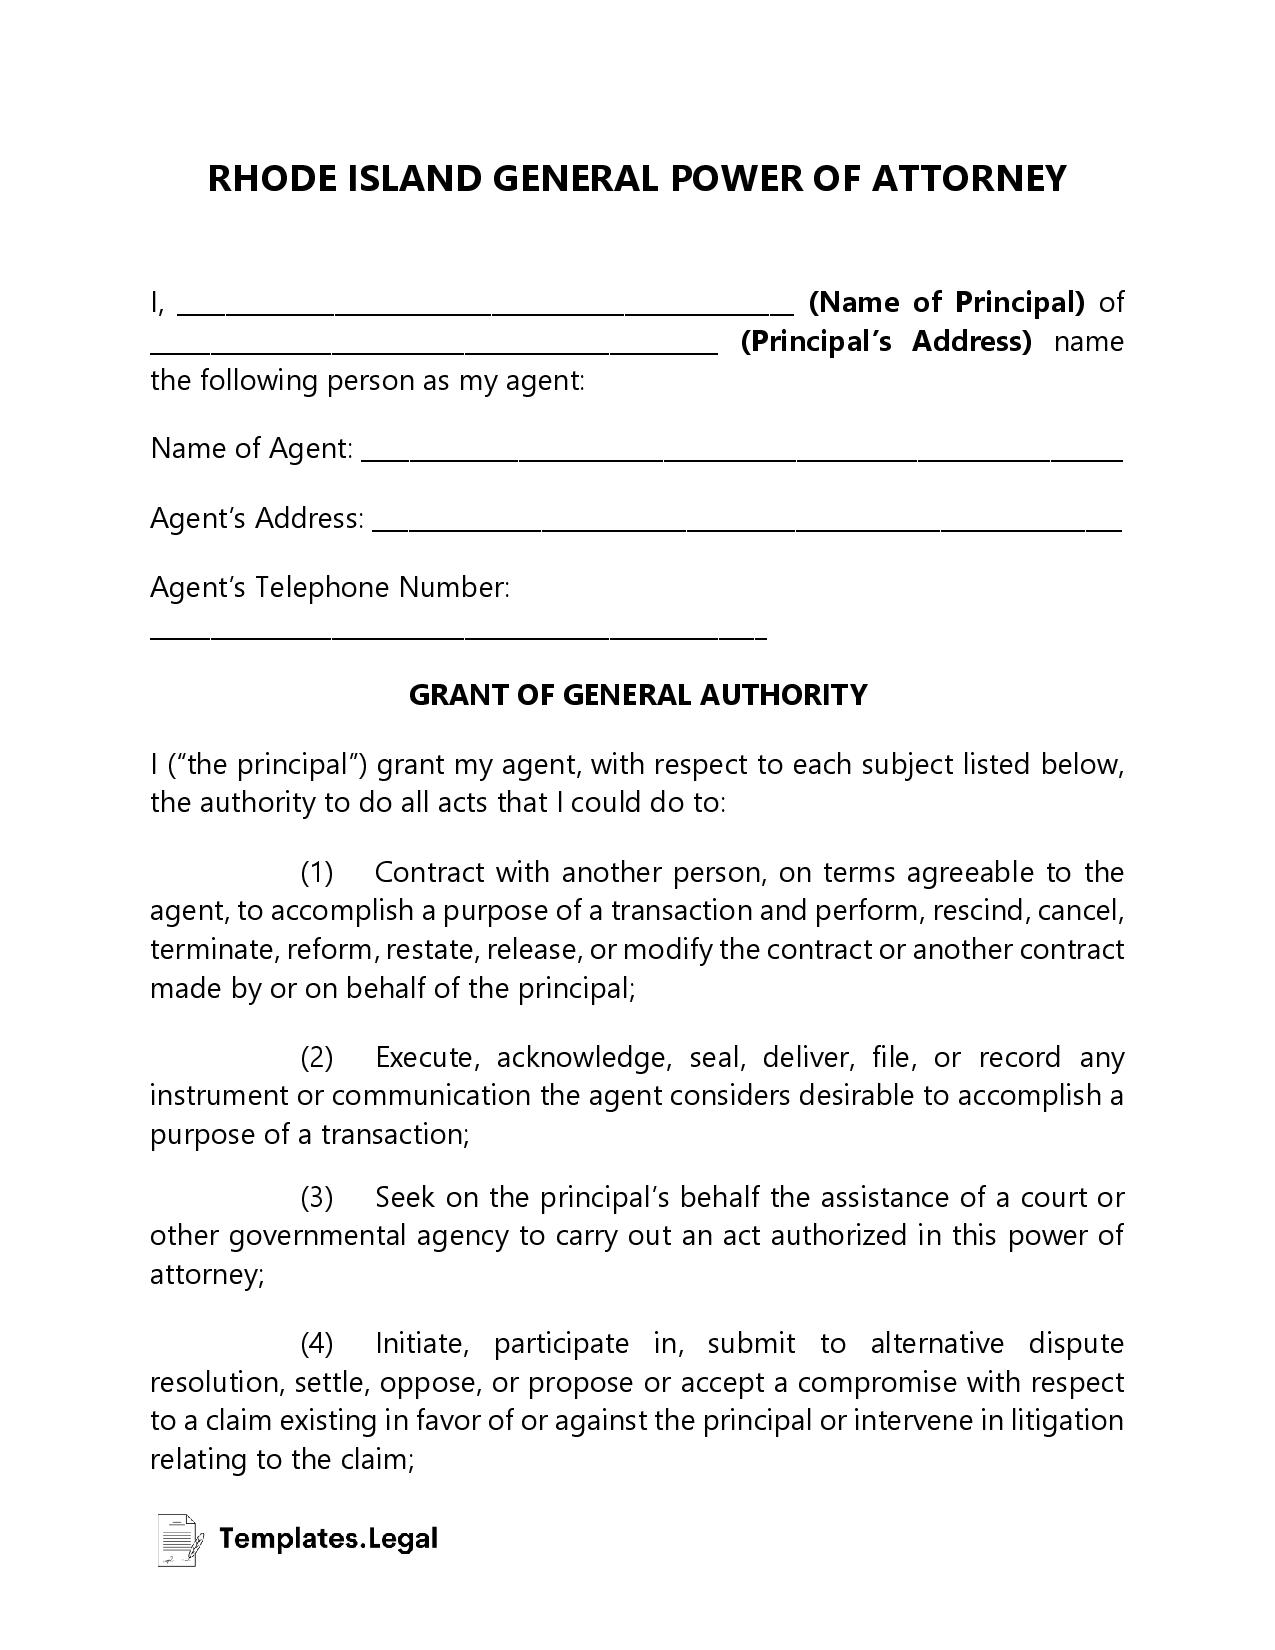 Rhode Island General Power of Attorney - Templates.Legal